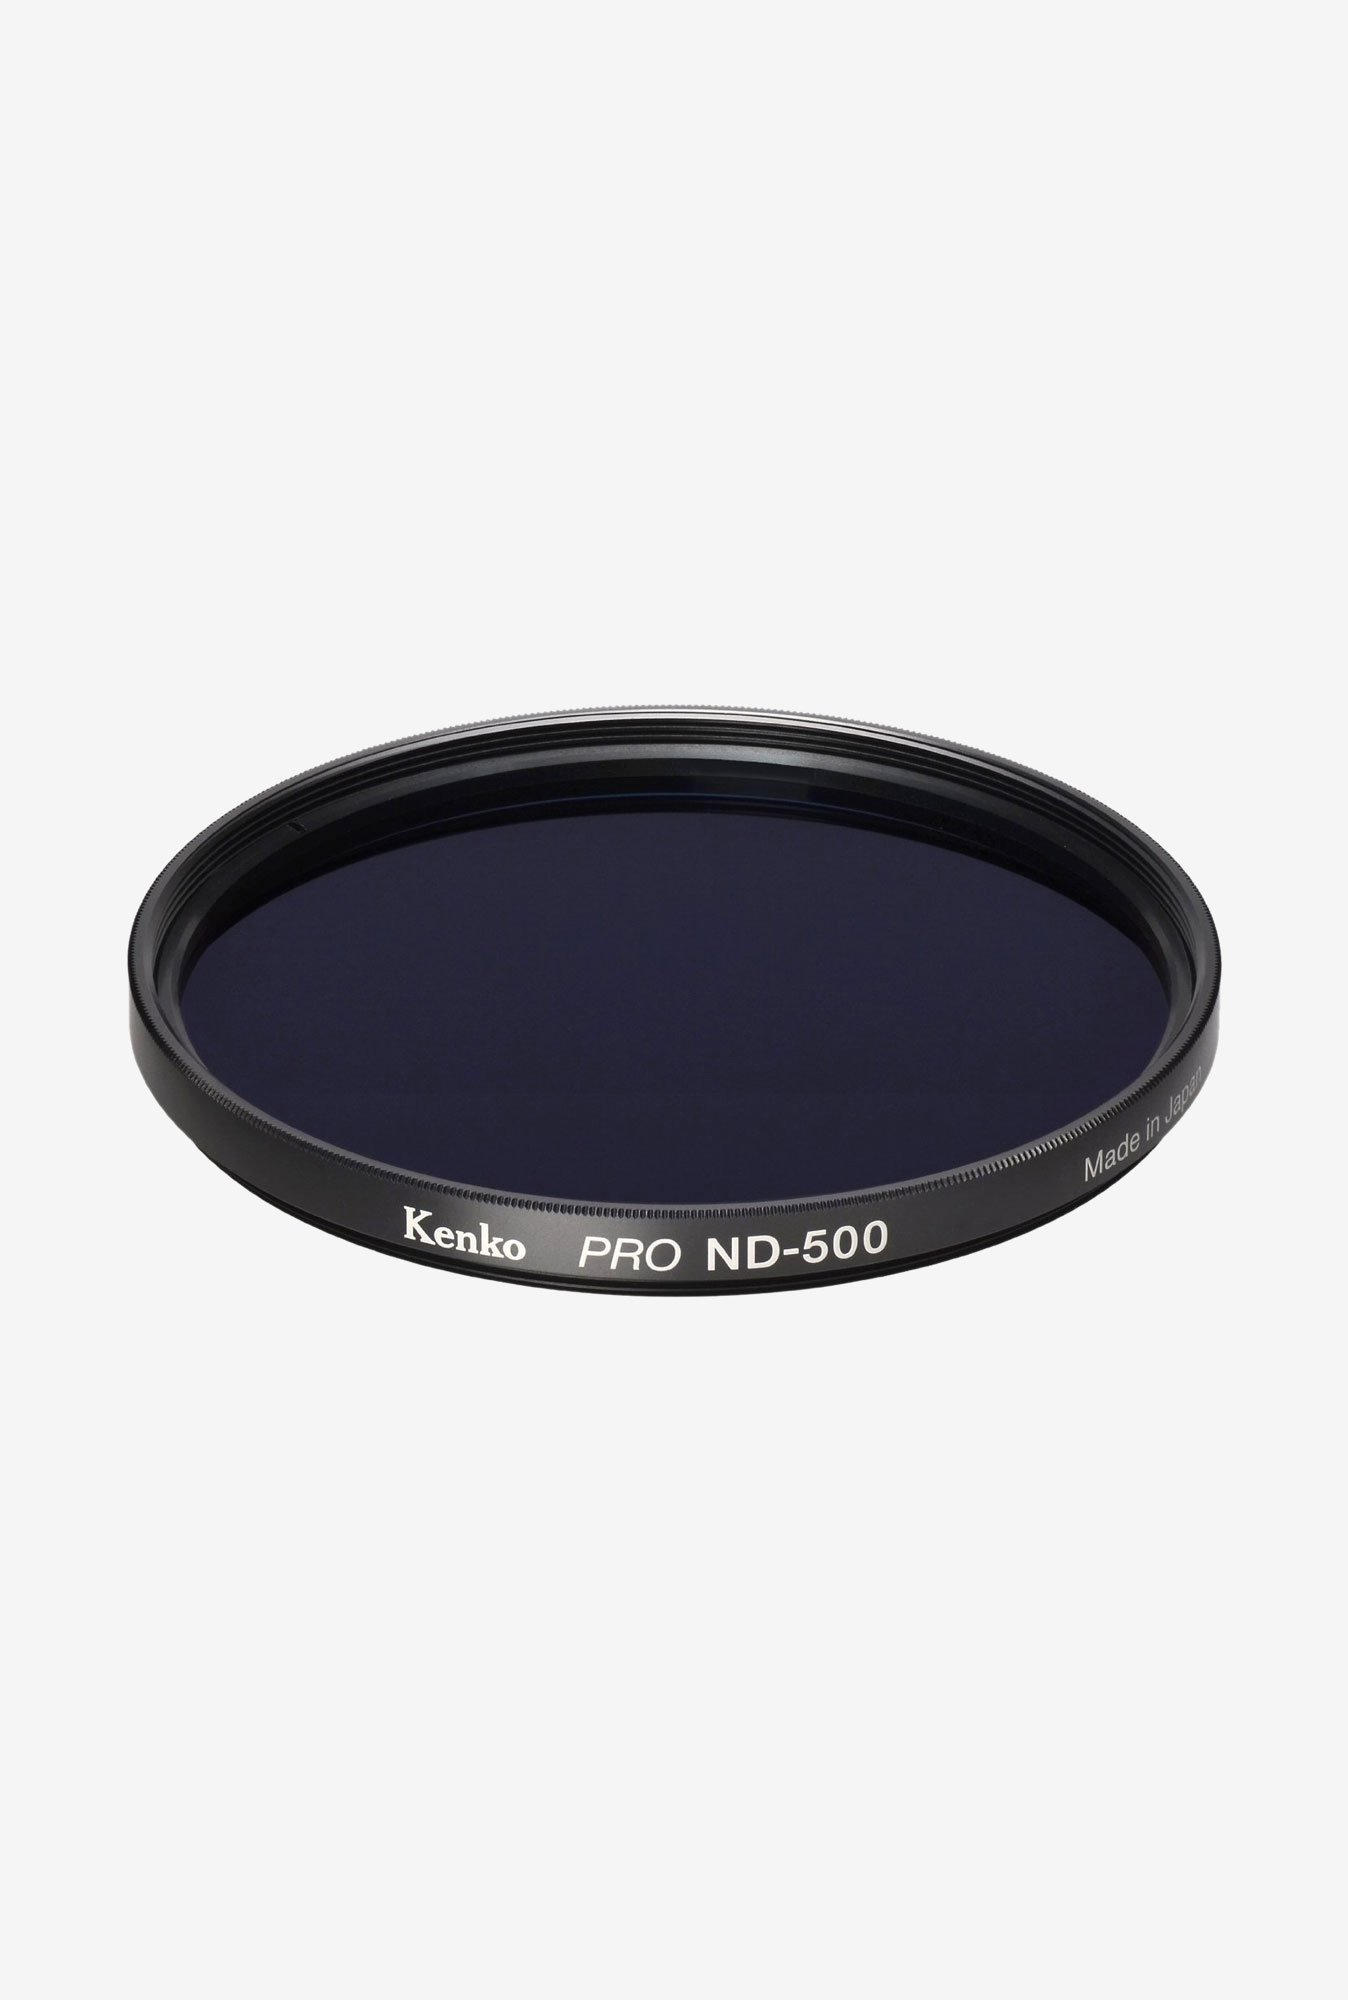 Kenko 49mm Pro ND500 Multicoated Camera Lens Filter (Black)